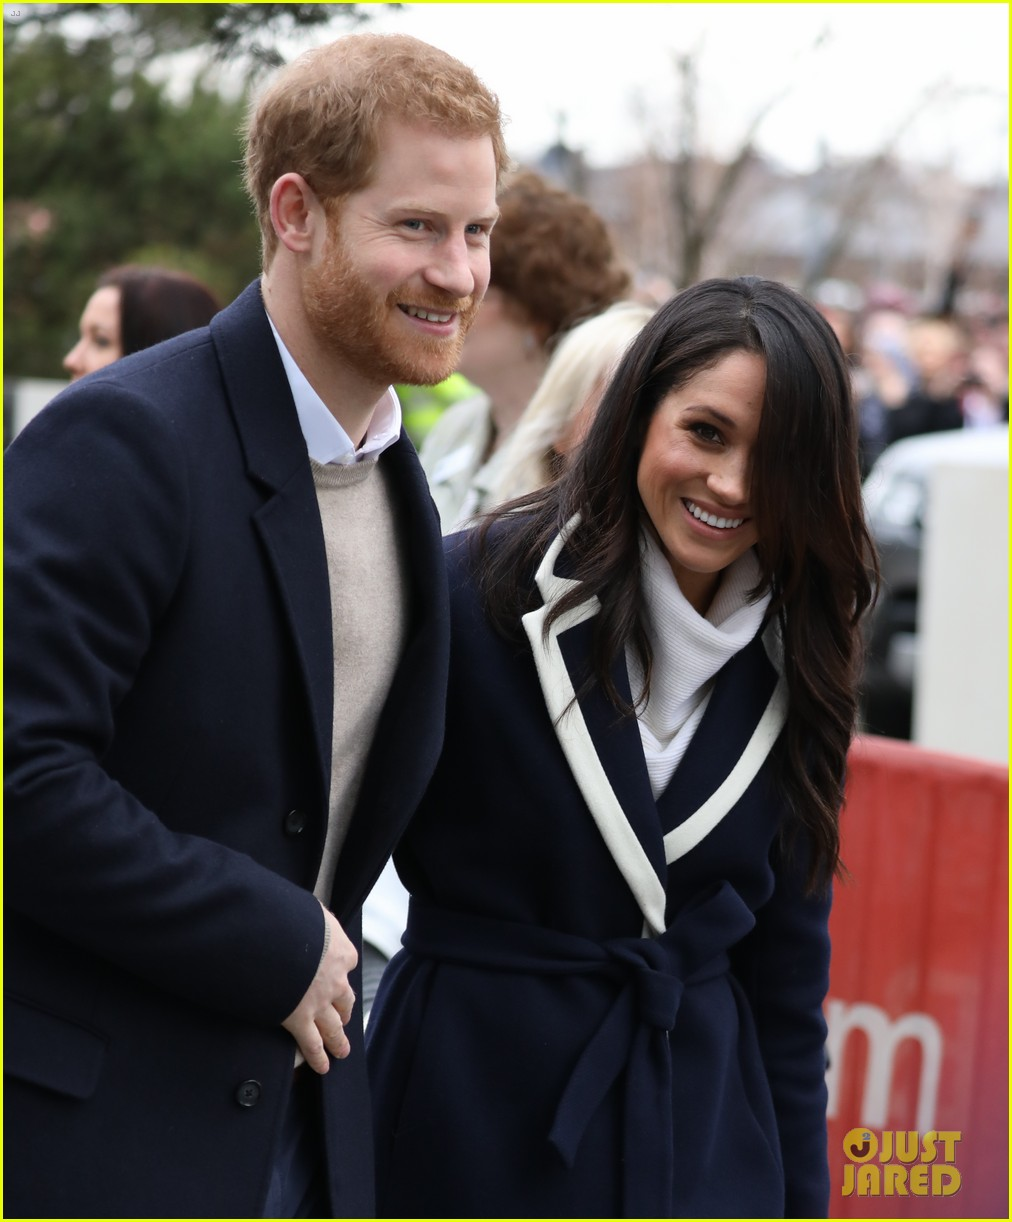 Prince Harry & Meghan Markle Step Out Together For